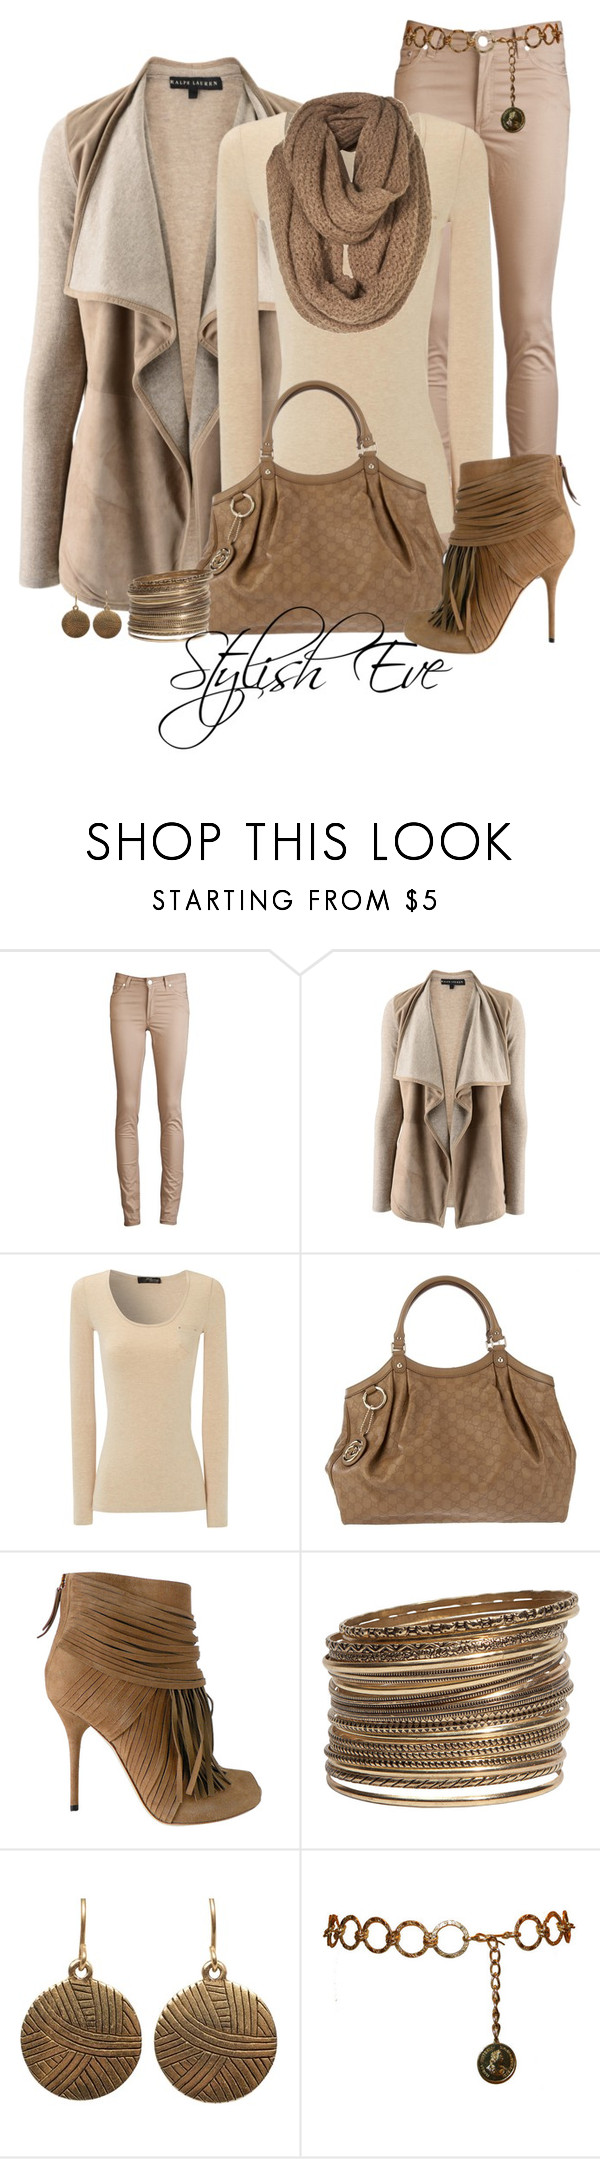 """""""aml"""" by stylish-eve ❤ liked on Polyvore featuring Acne Studios, Ralph Lauren, Jane Norman, Gucci and H&M"""